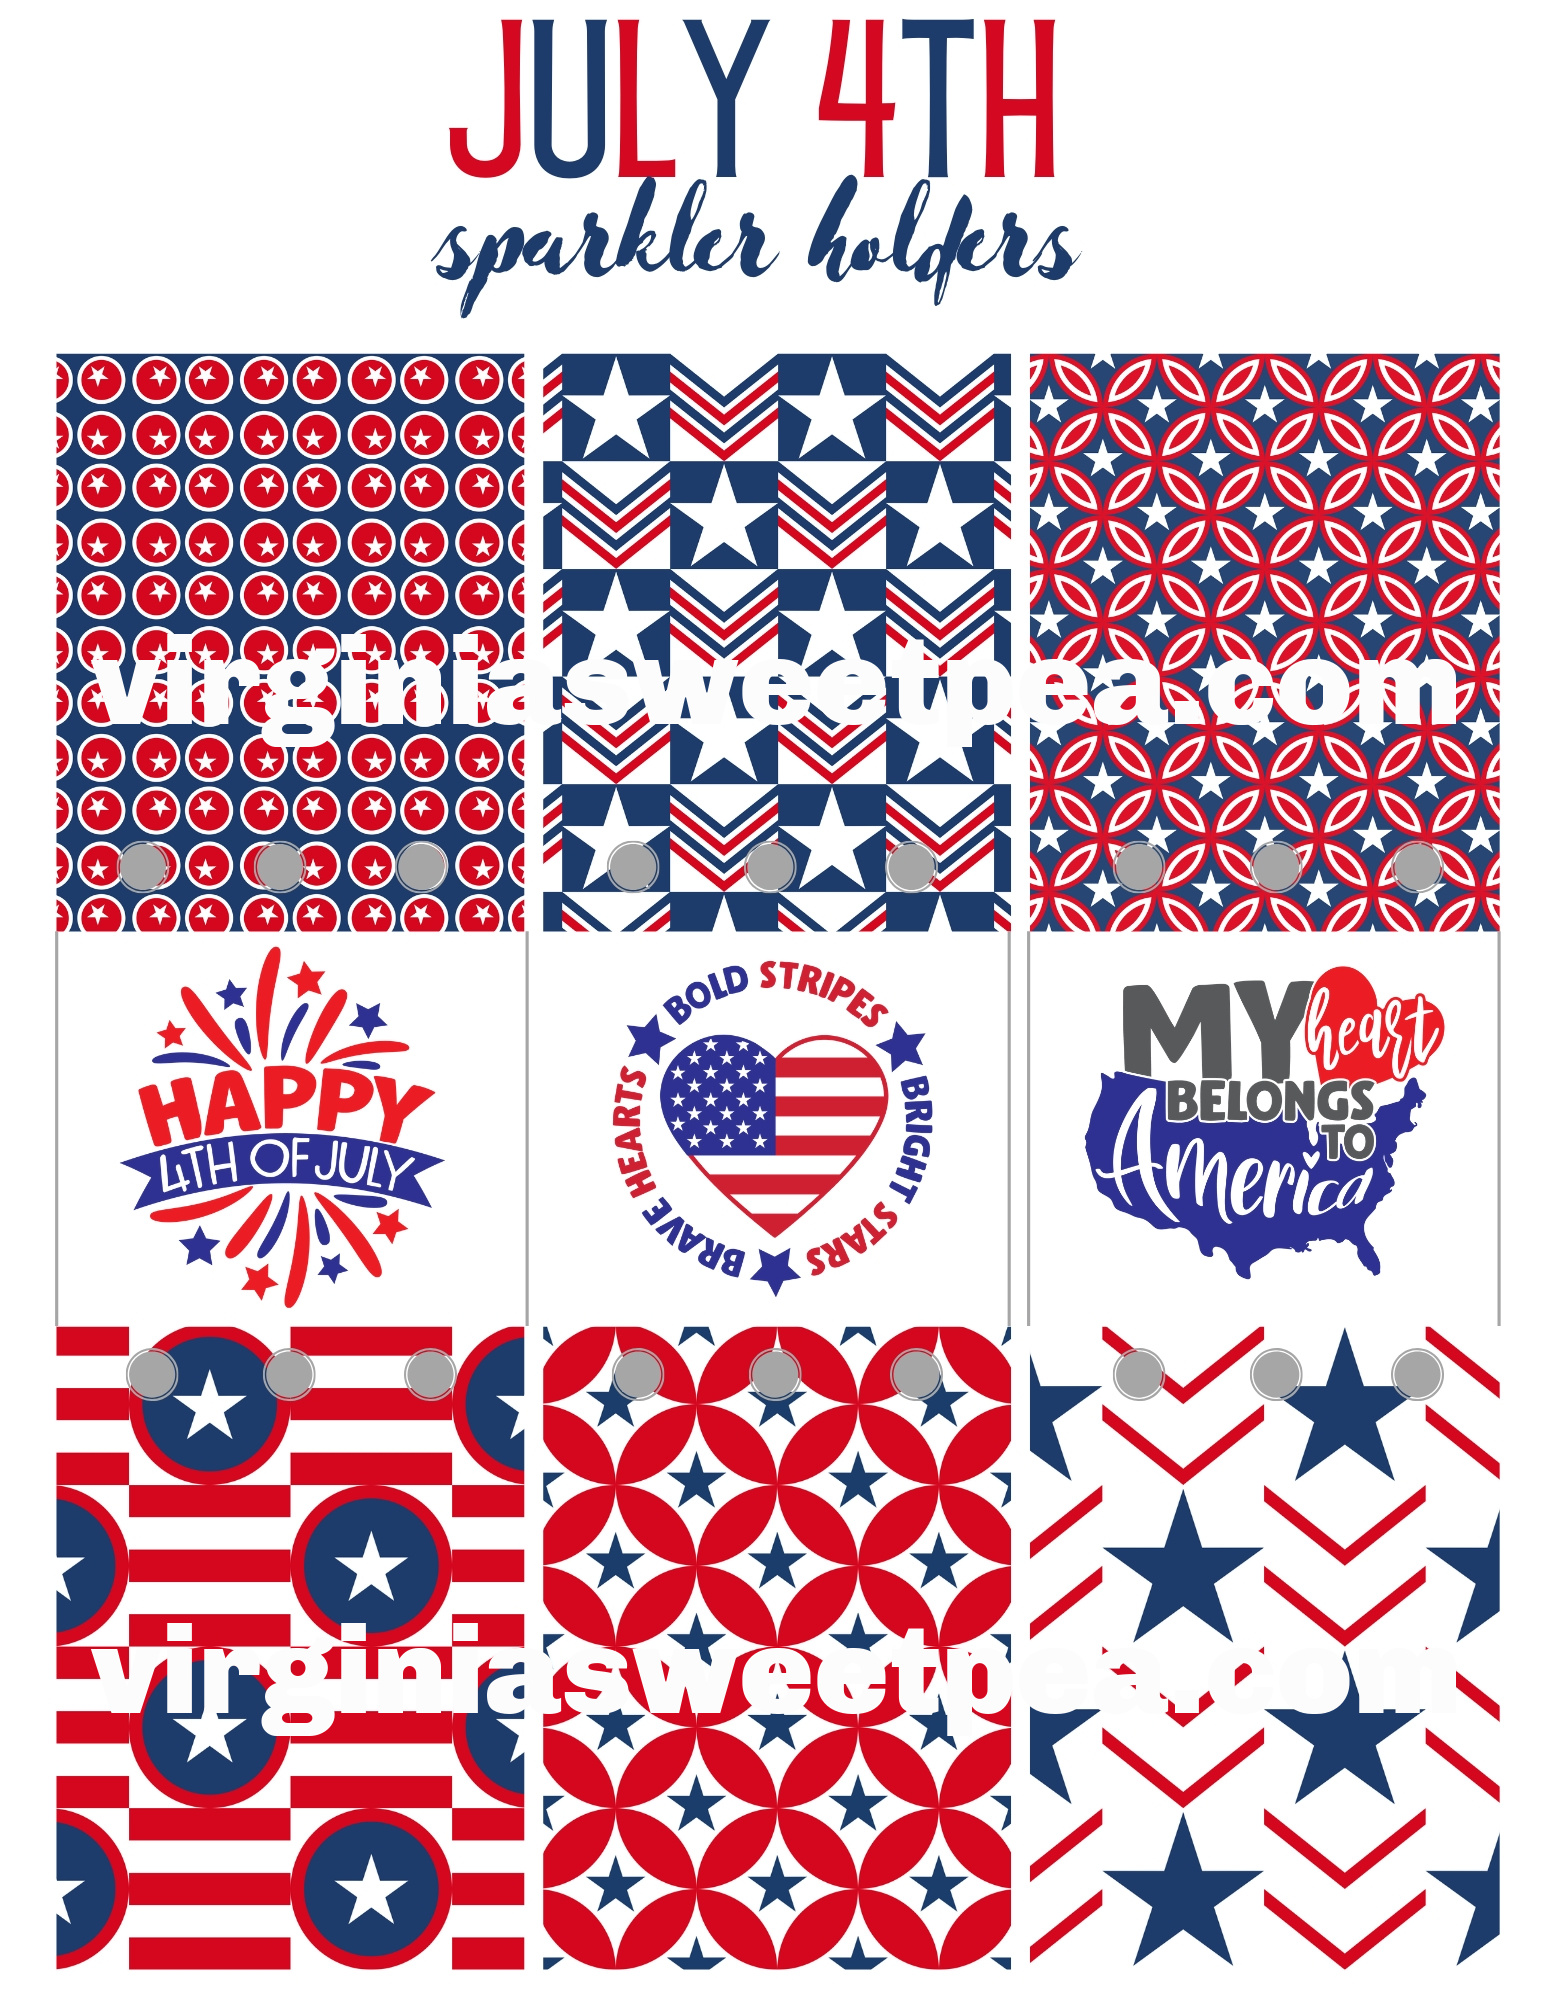 Free Printable 4th of July Sparkler Holders